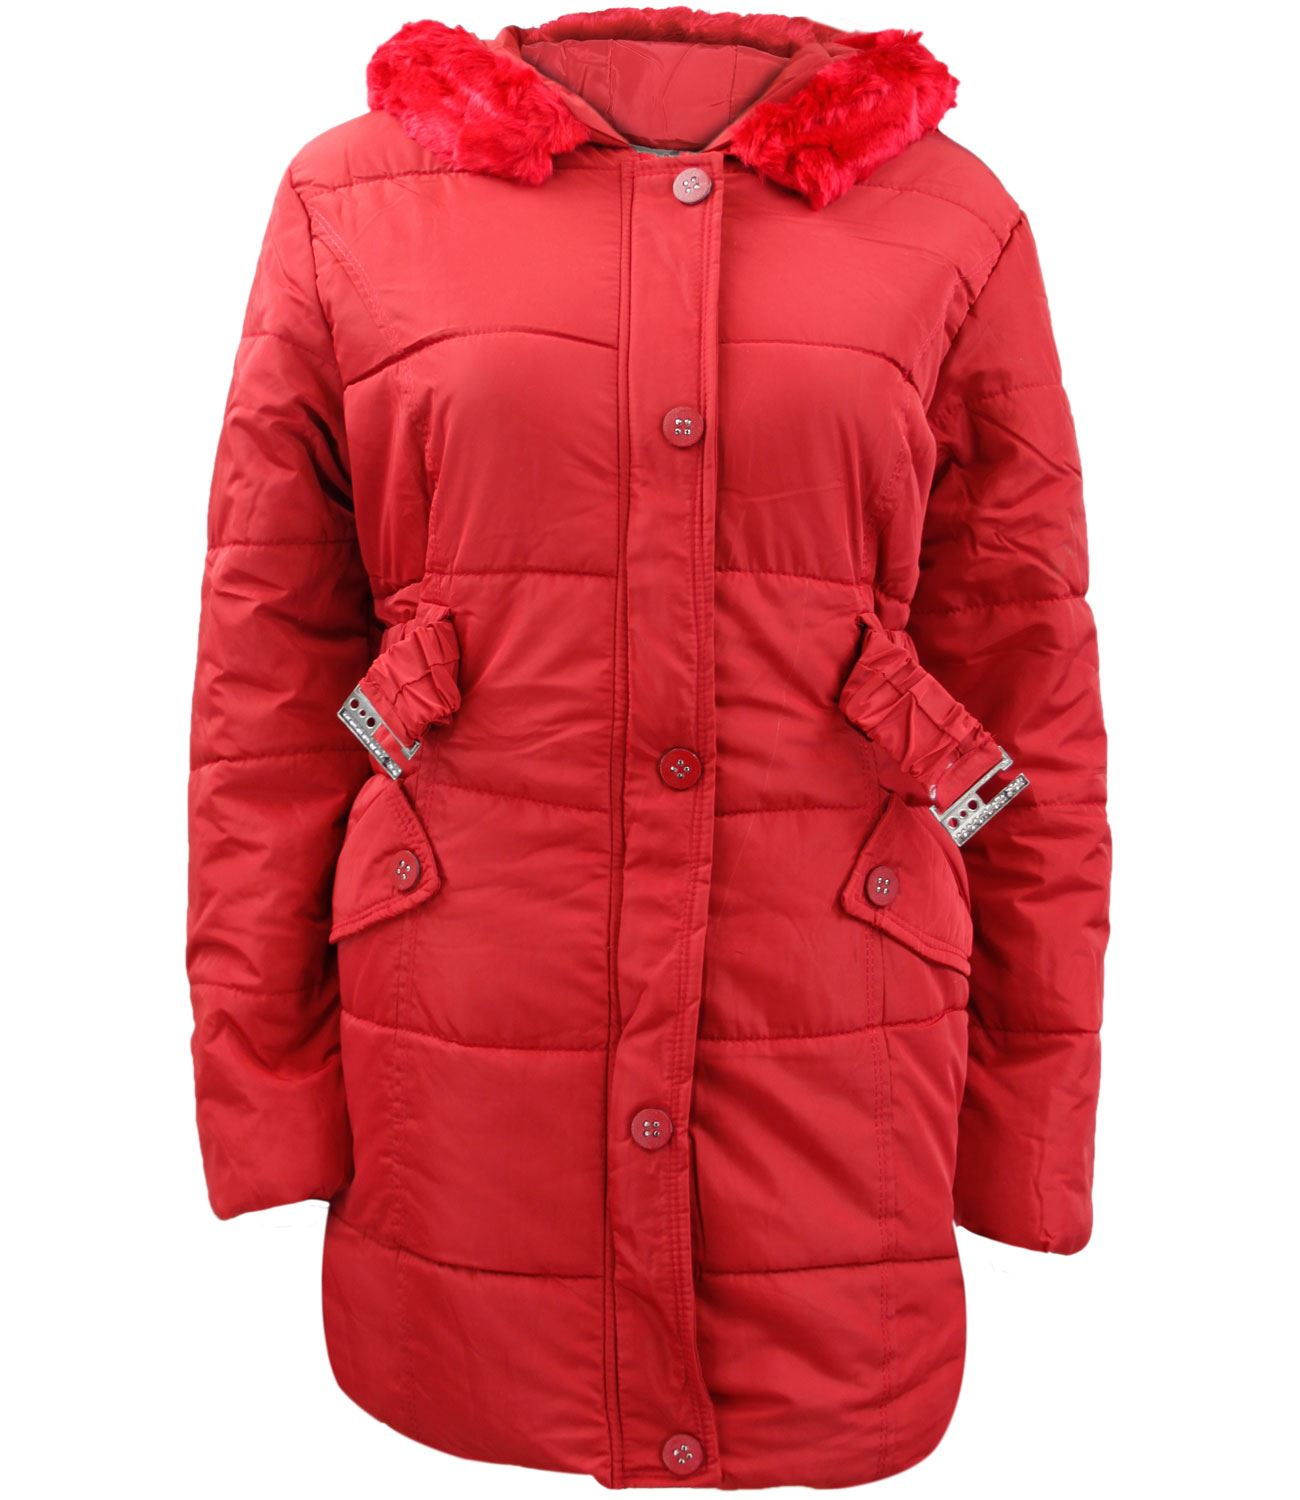 We have a wide selection of women's coats – ranging from fleece jackets and ,+ followers on Twitter.